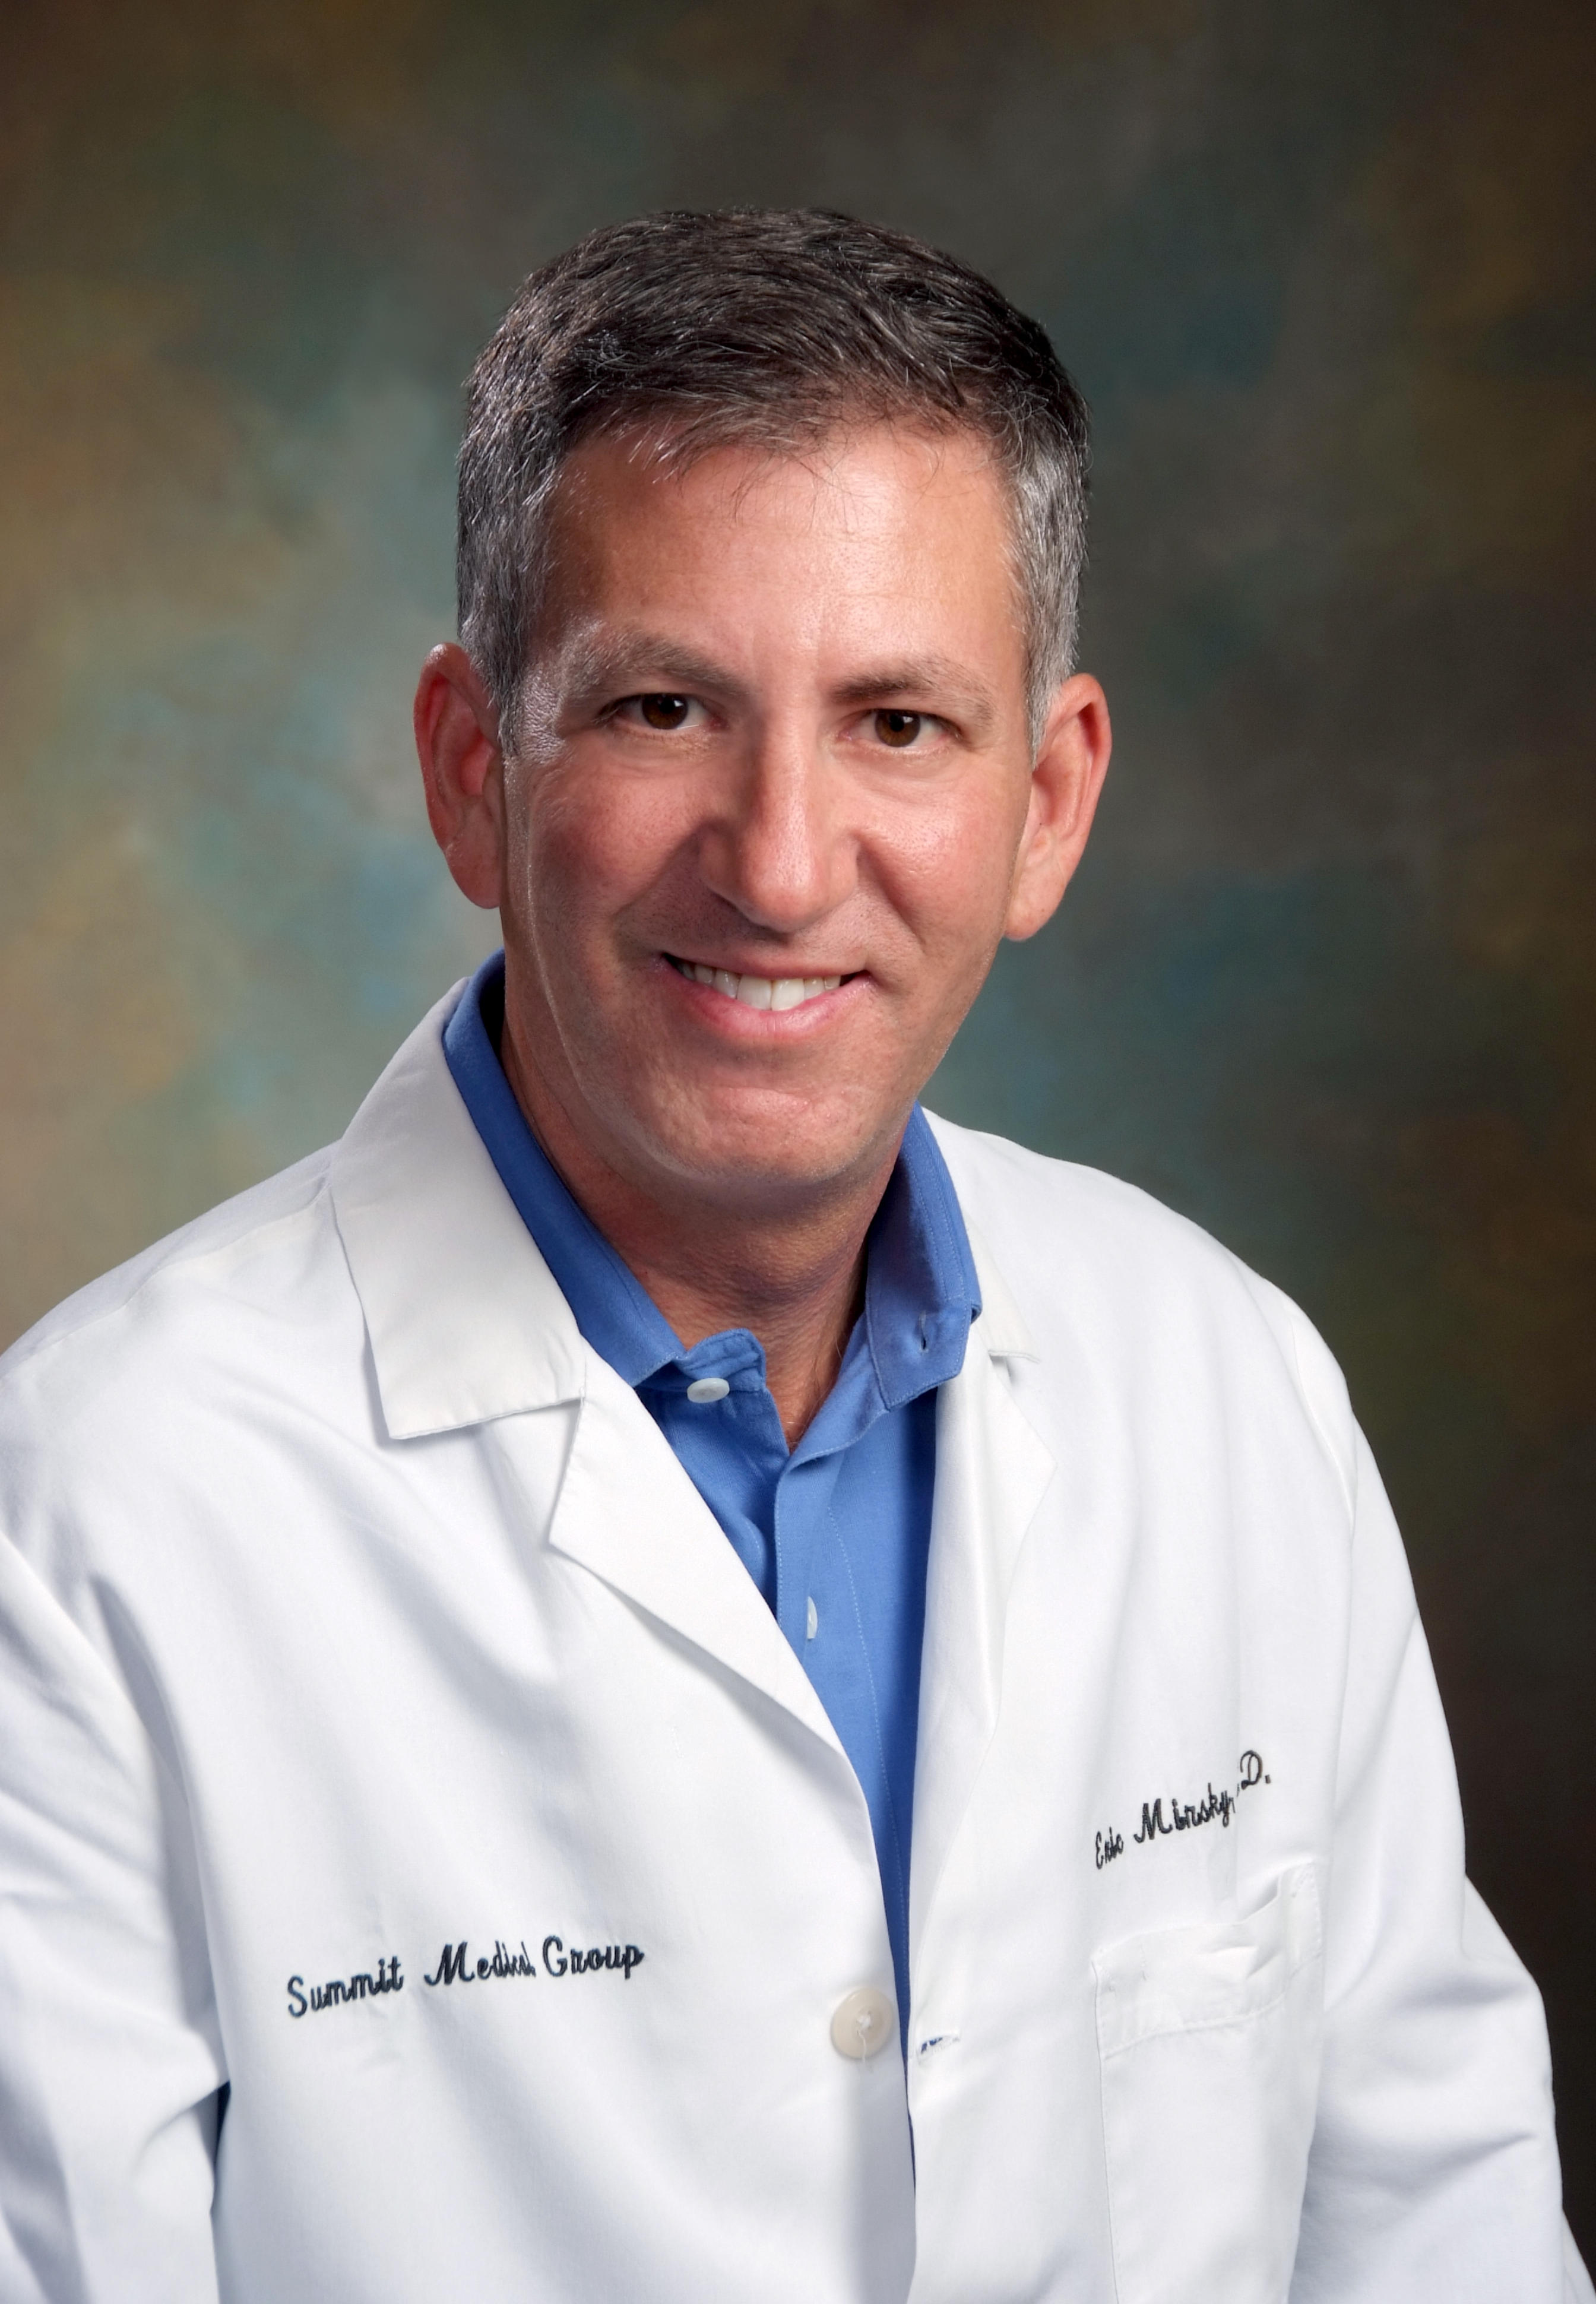 Eric Mirsky, MD